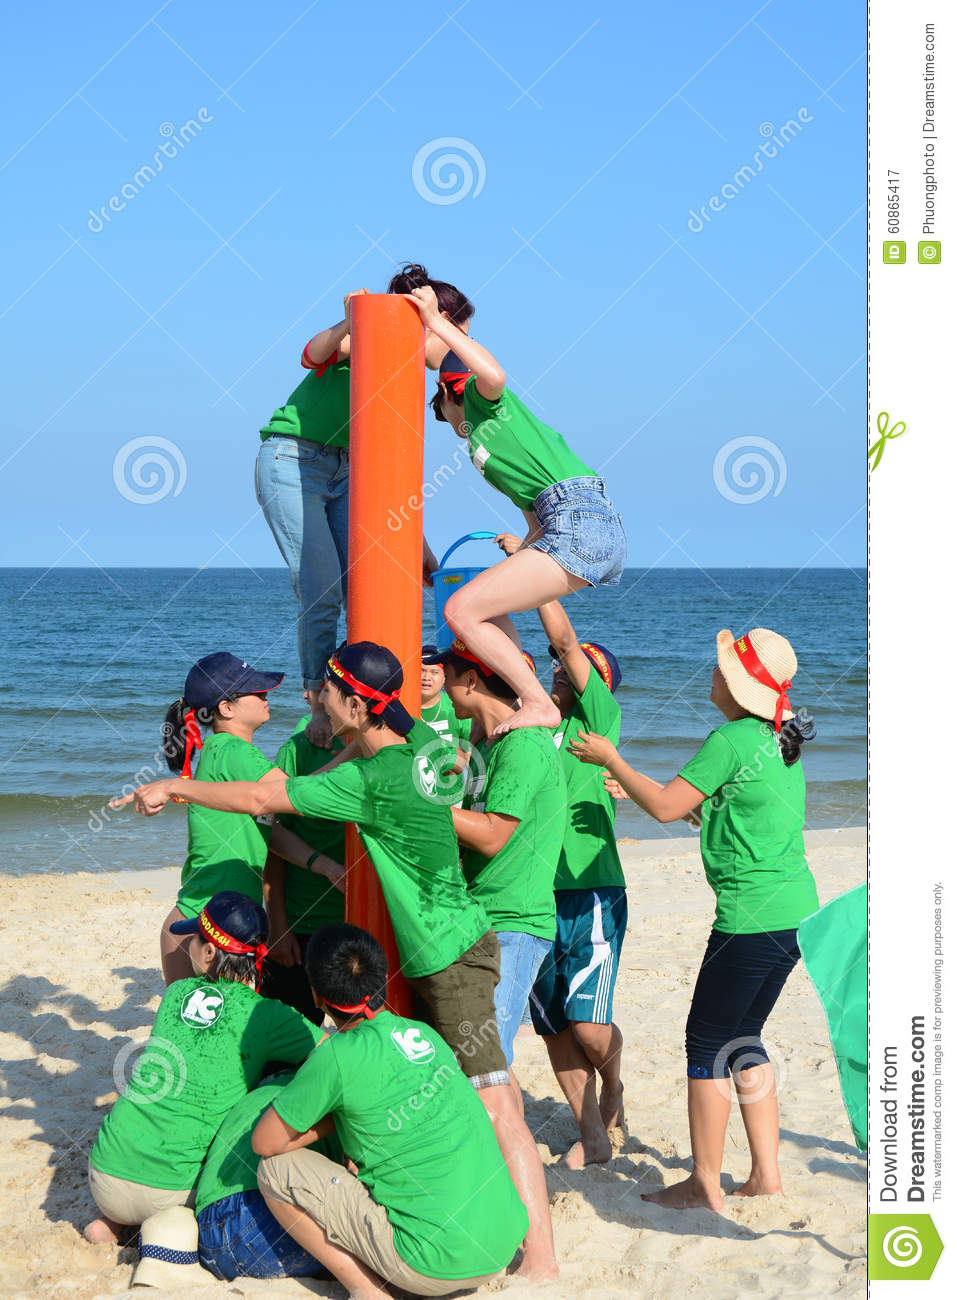 holiday at vung tau beach essay Now 35 (was 4 1 ) on tripadvisor: seaside resort, vung tau see 103 traveller reviews, 96 candid photos vung tau holiday packages vung tau restaurants vung tau attractions someone think it should be on the beach, you can reach the seaside easily actually.